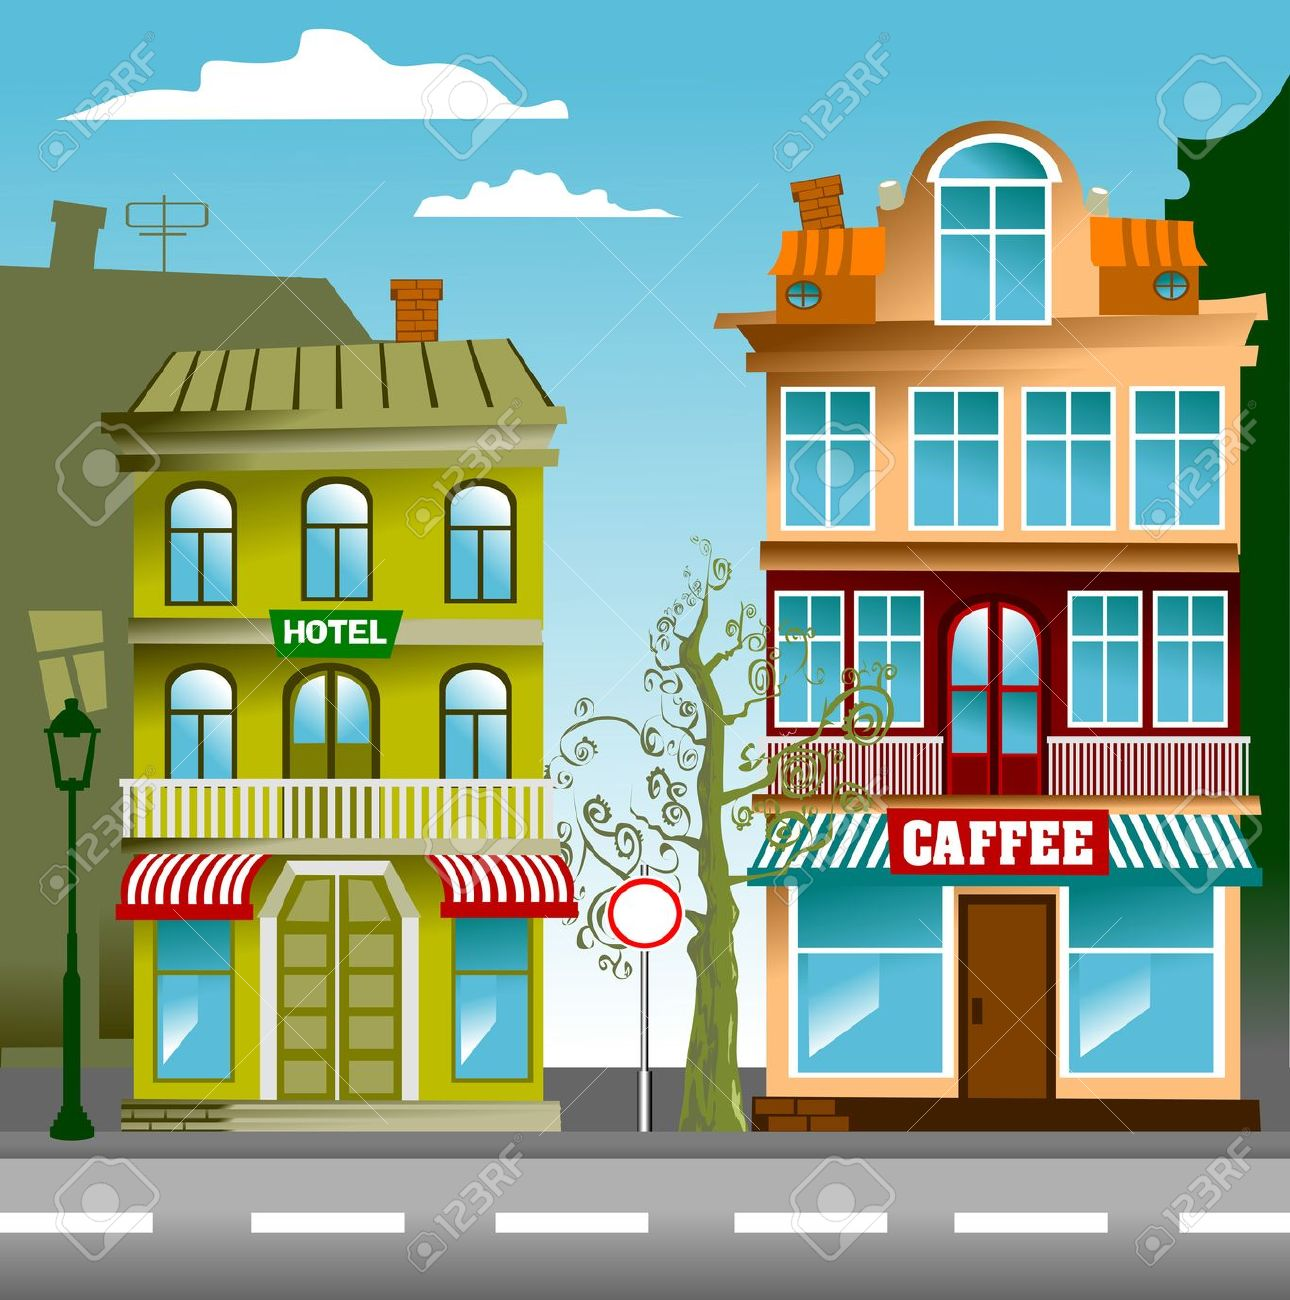 Free street cliparts download. Neighborhood clipart little town